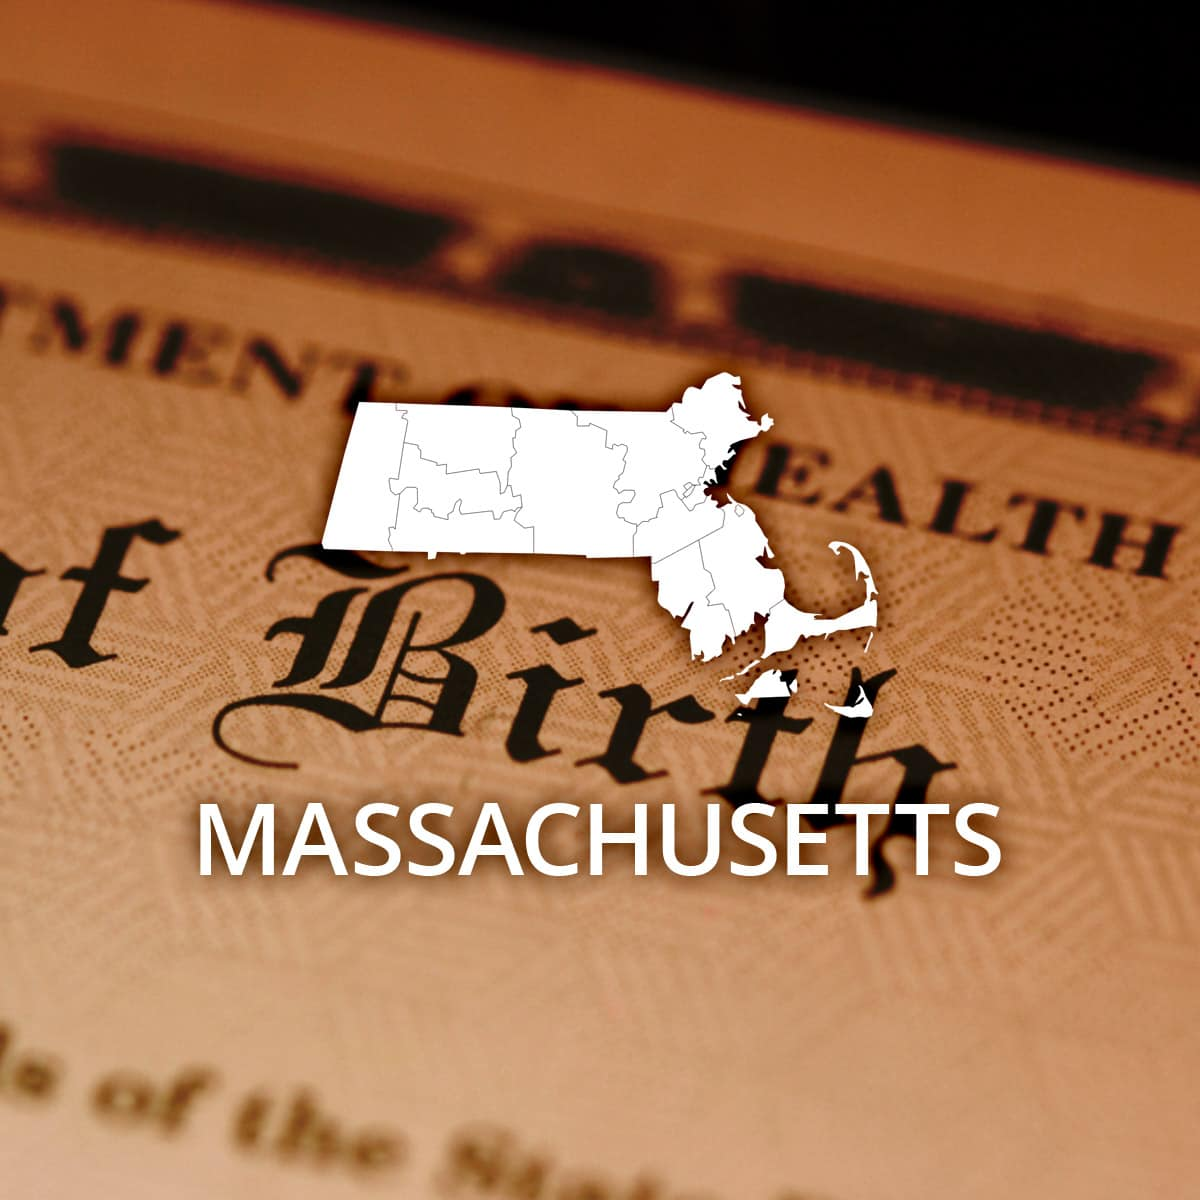 Where to Obtain a Massachusetts Birth Certificate